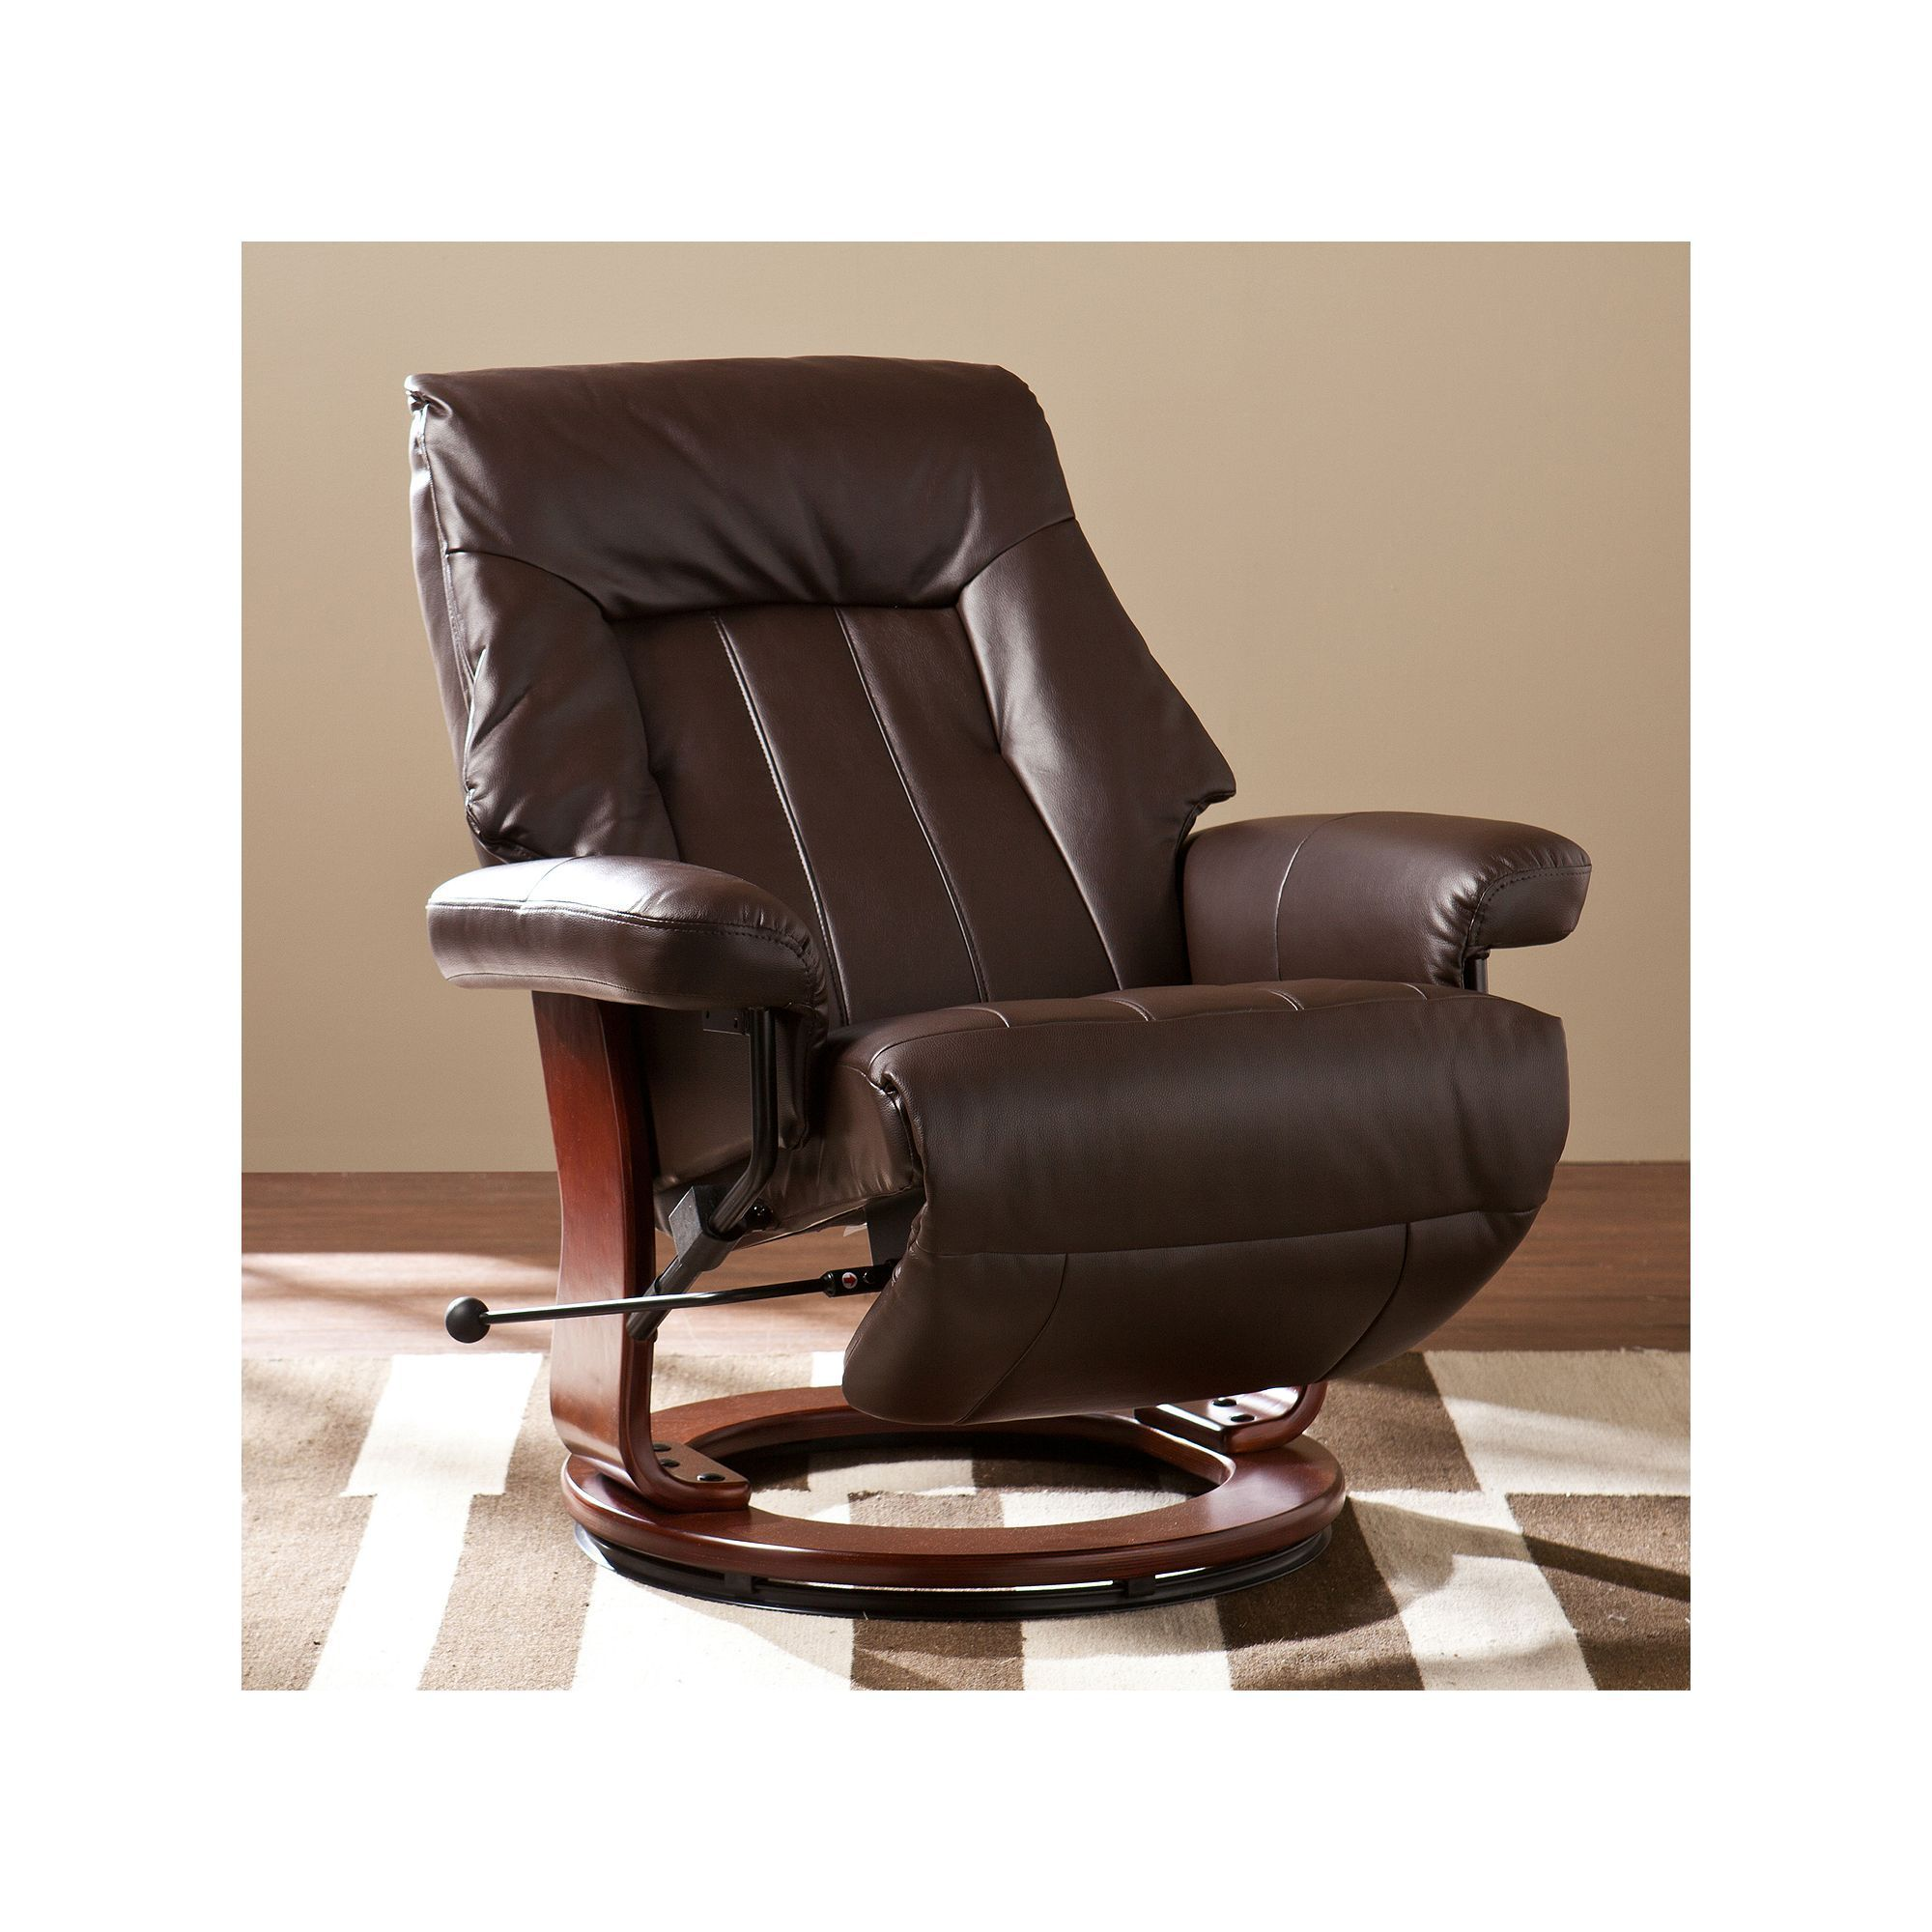 Southern Enterprises Dalian Recliner Brown Furniture Recliner